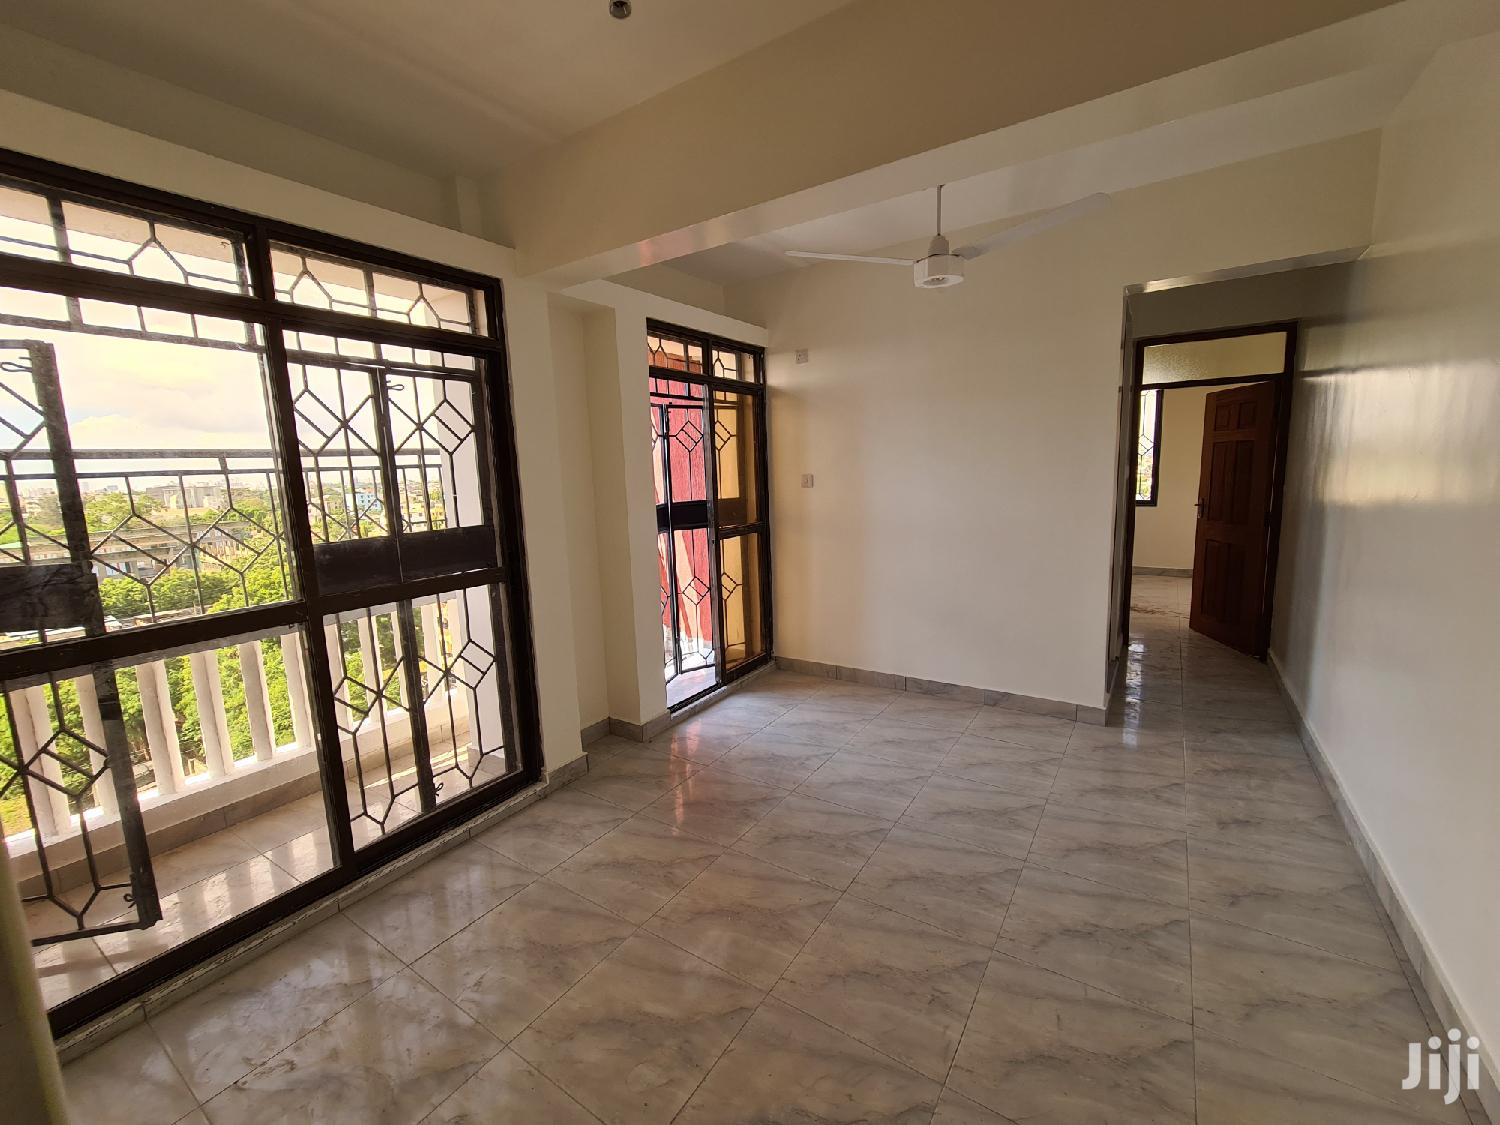 Bright, Spacious Brand New 1 Bedroom Apartments for Rent.